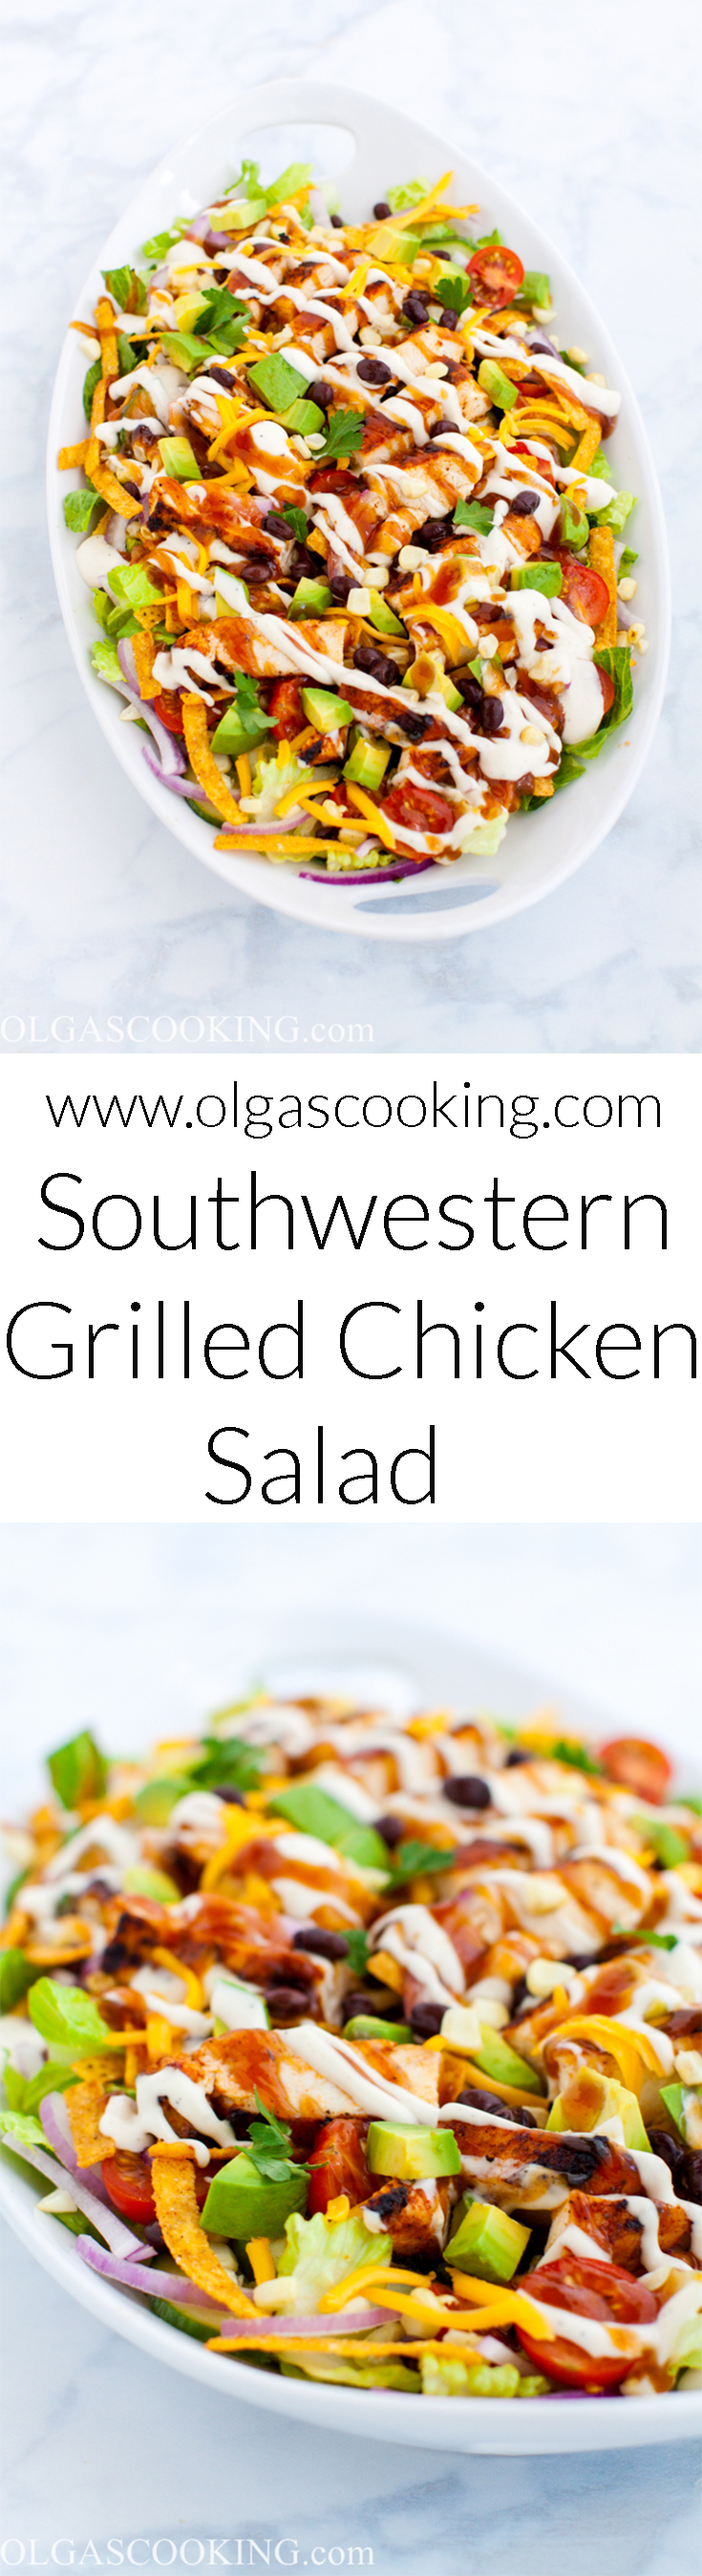 Southwestern Grilled Chicken Salad Recipe